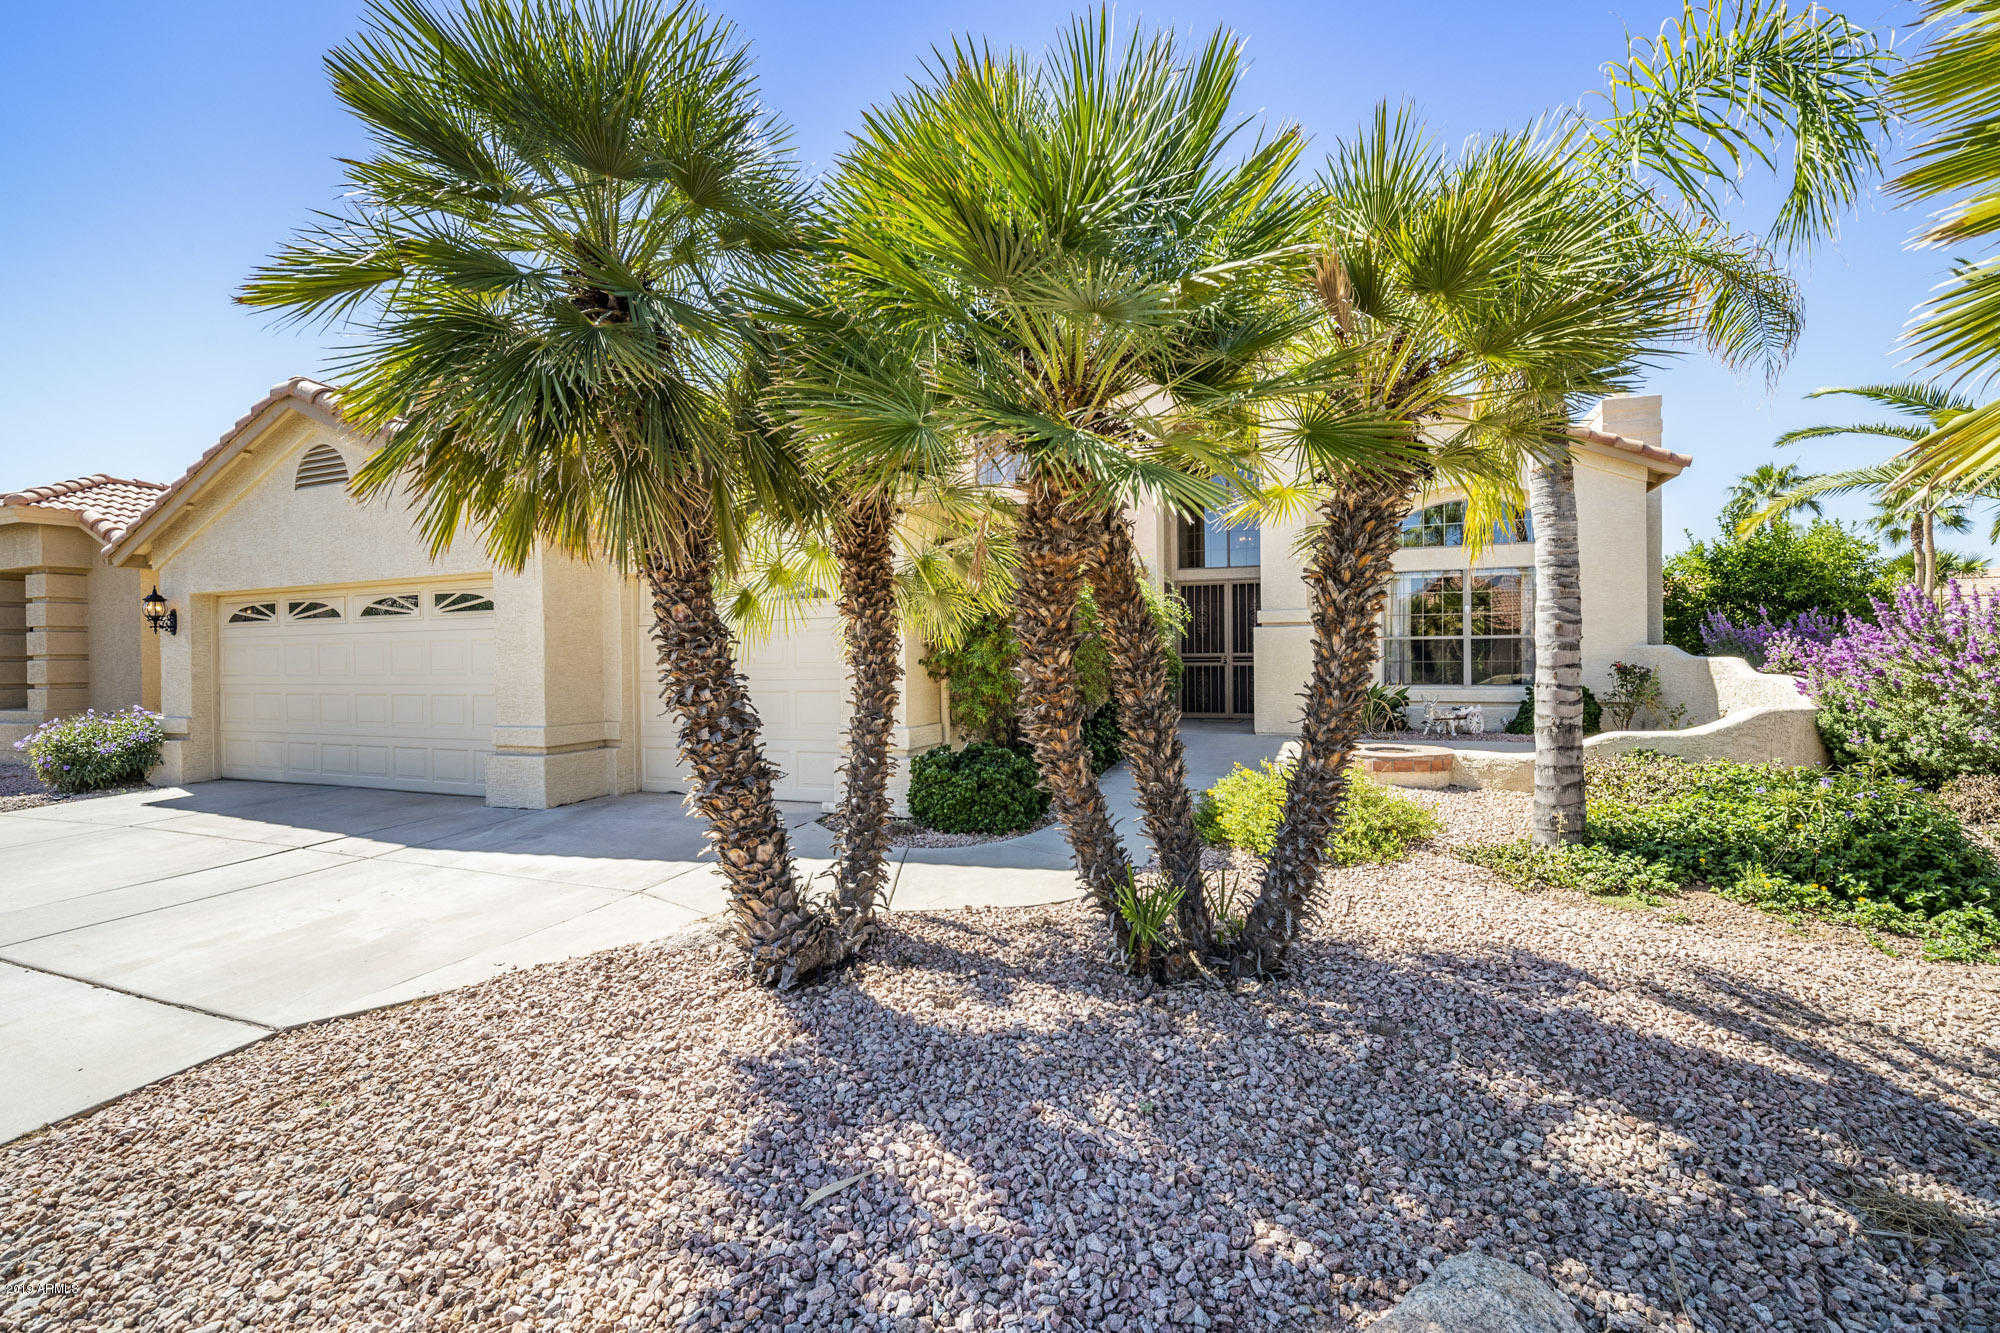 $419,000 - 4Br/3Ba - Home for Sale in Oakwood, Sun Lakes